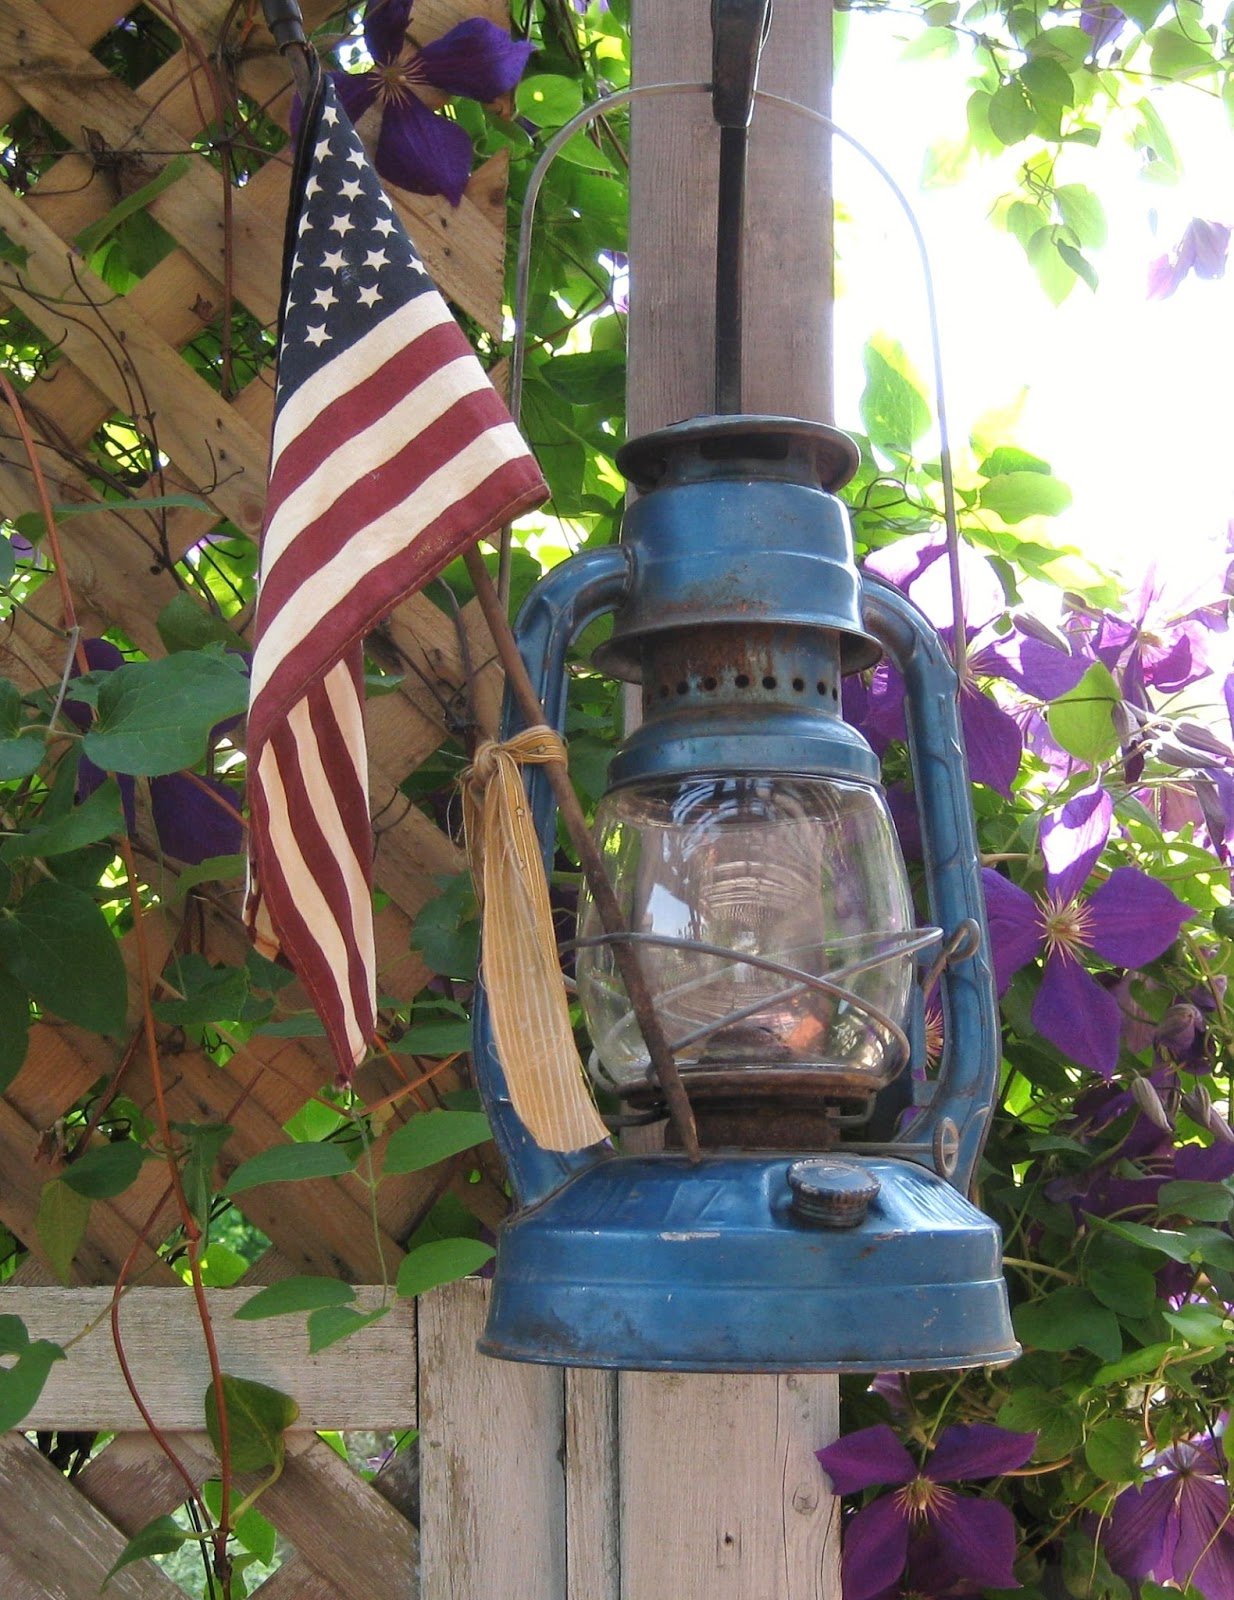 Flea Market Home Decor: A Place Called Home!: Decorating My Patio With Flea Market